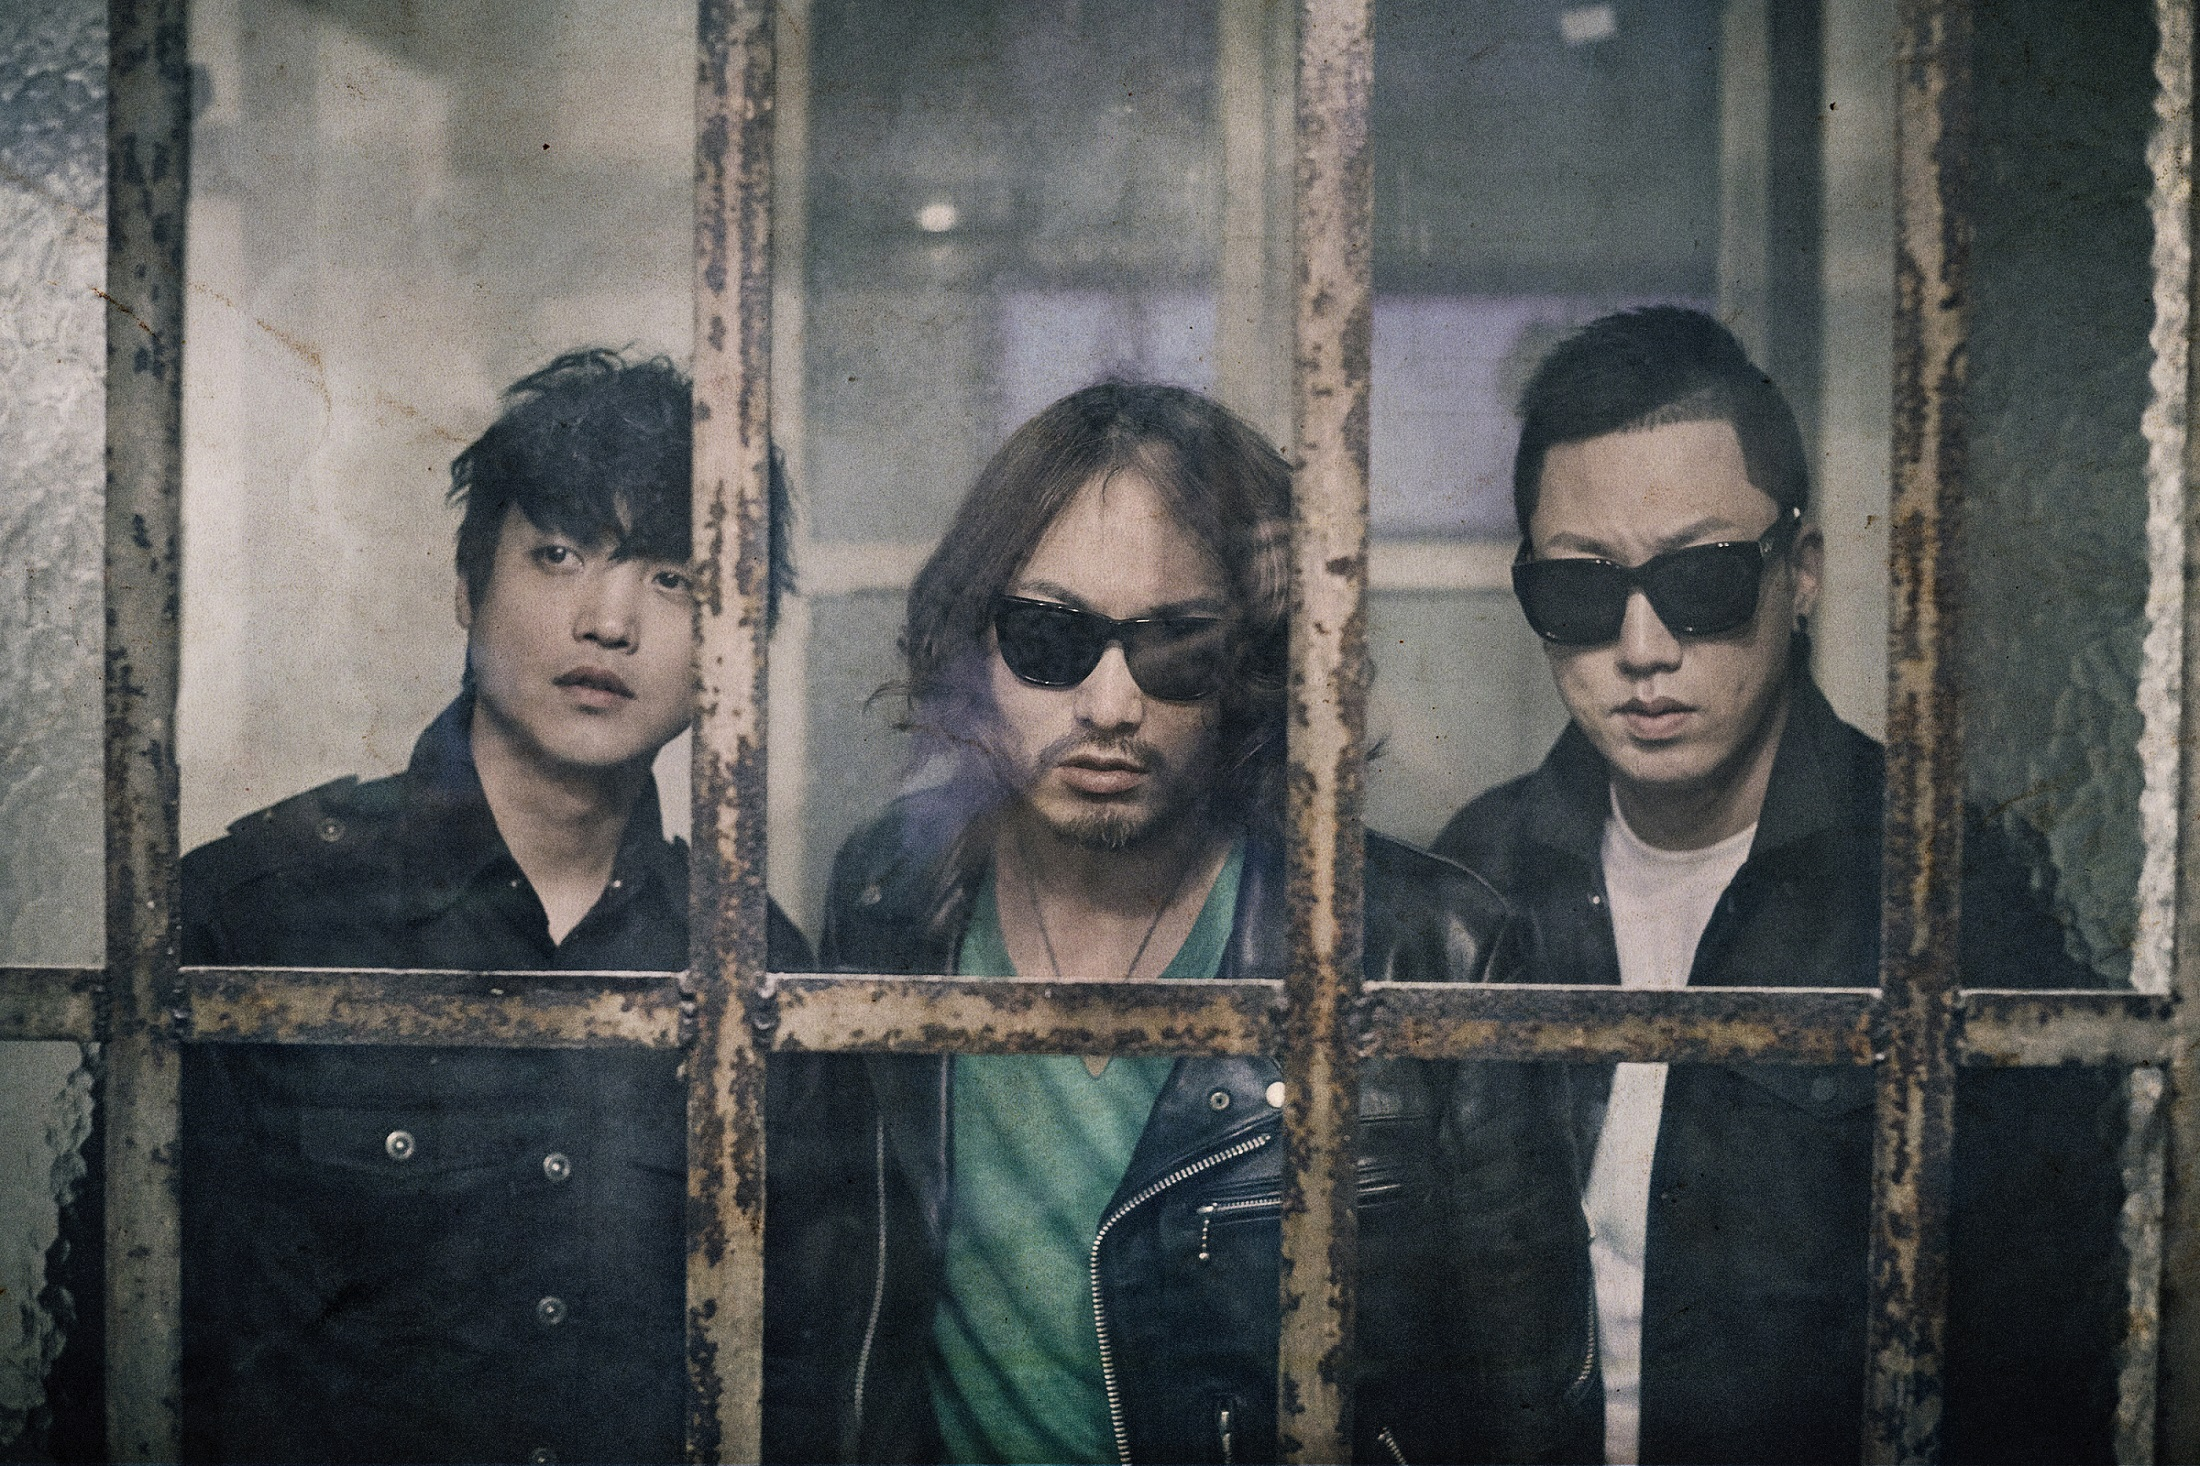 Galaxy Express on performing again at SXSW 2017